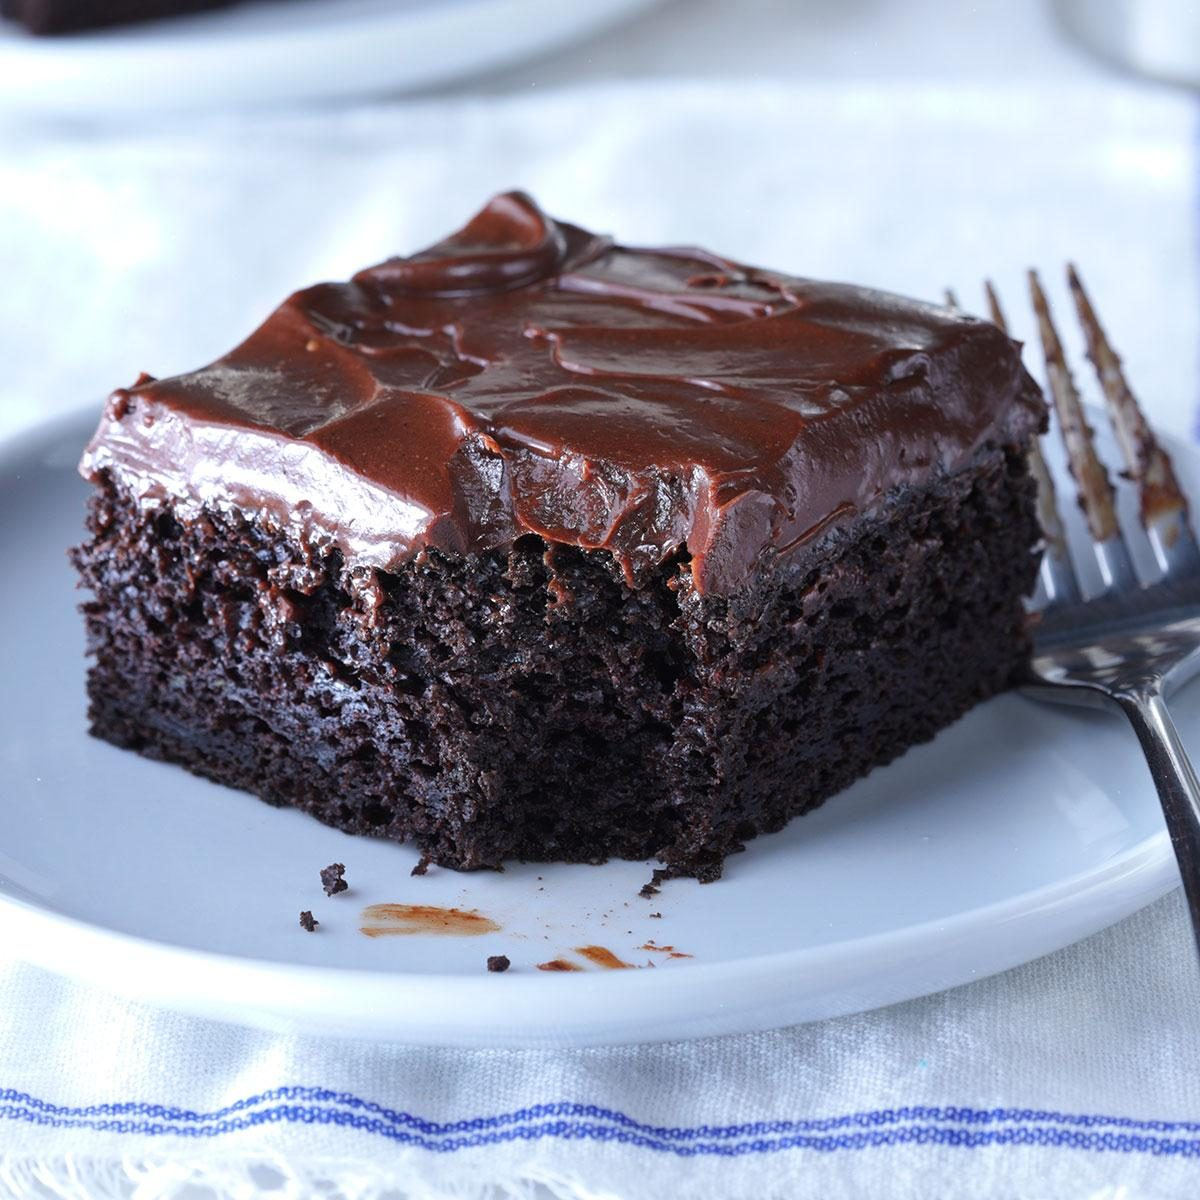 Chocolate Cake Recipe Using Oil